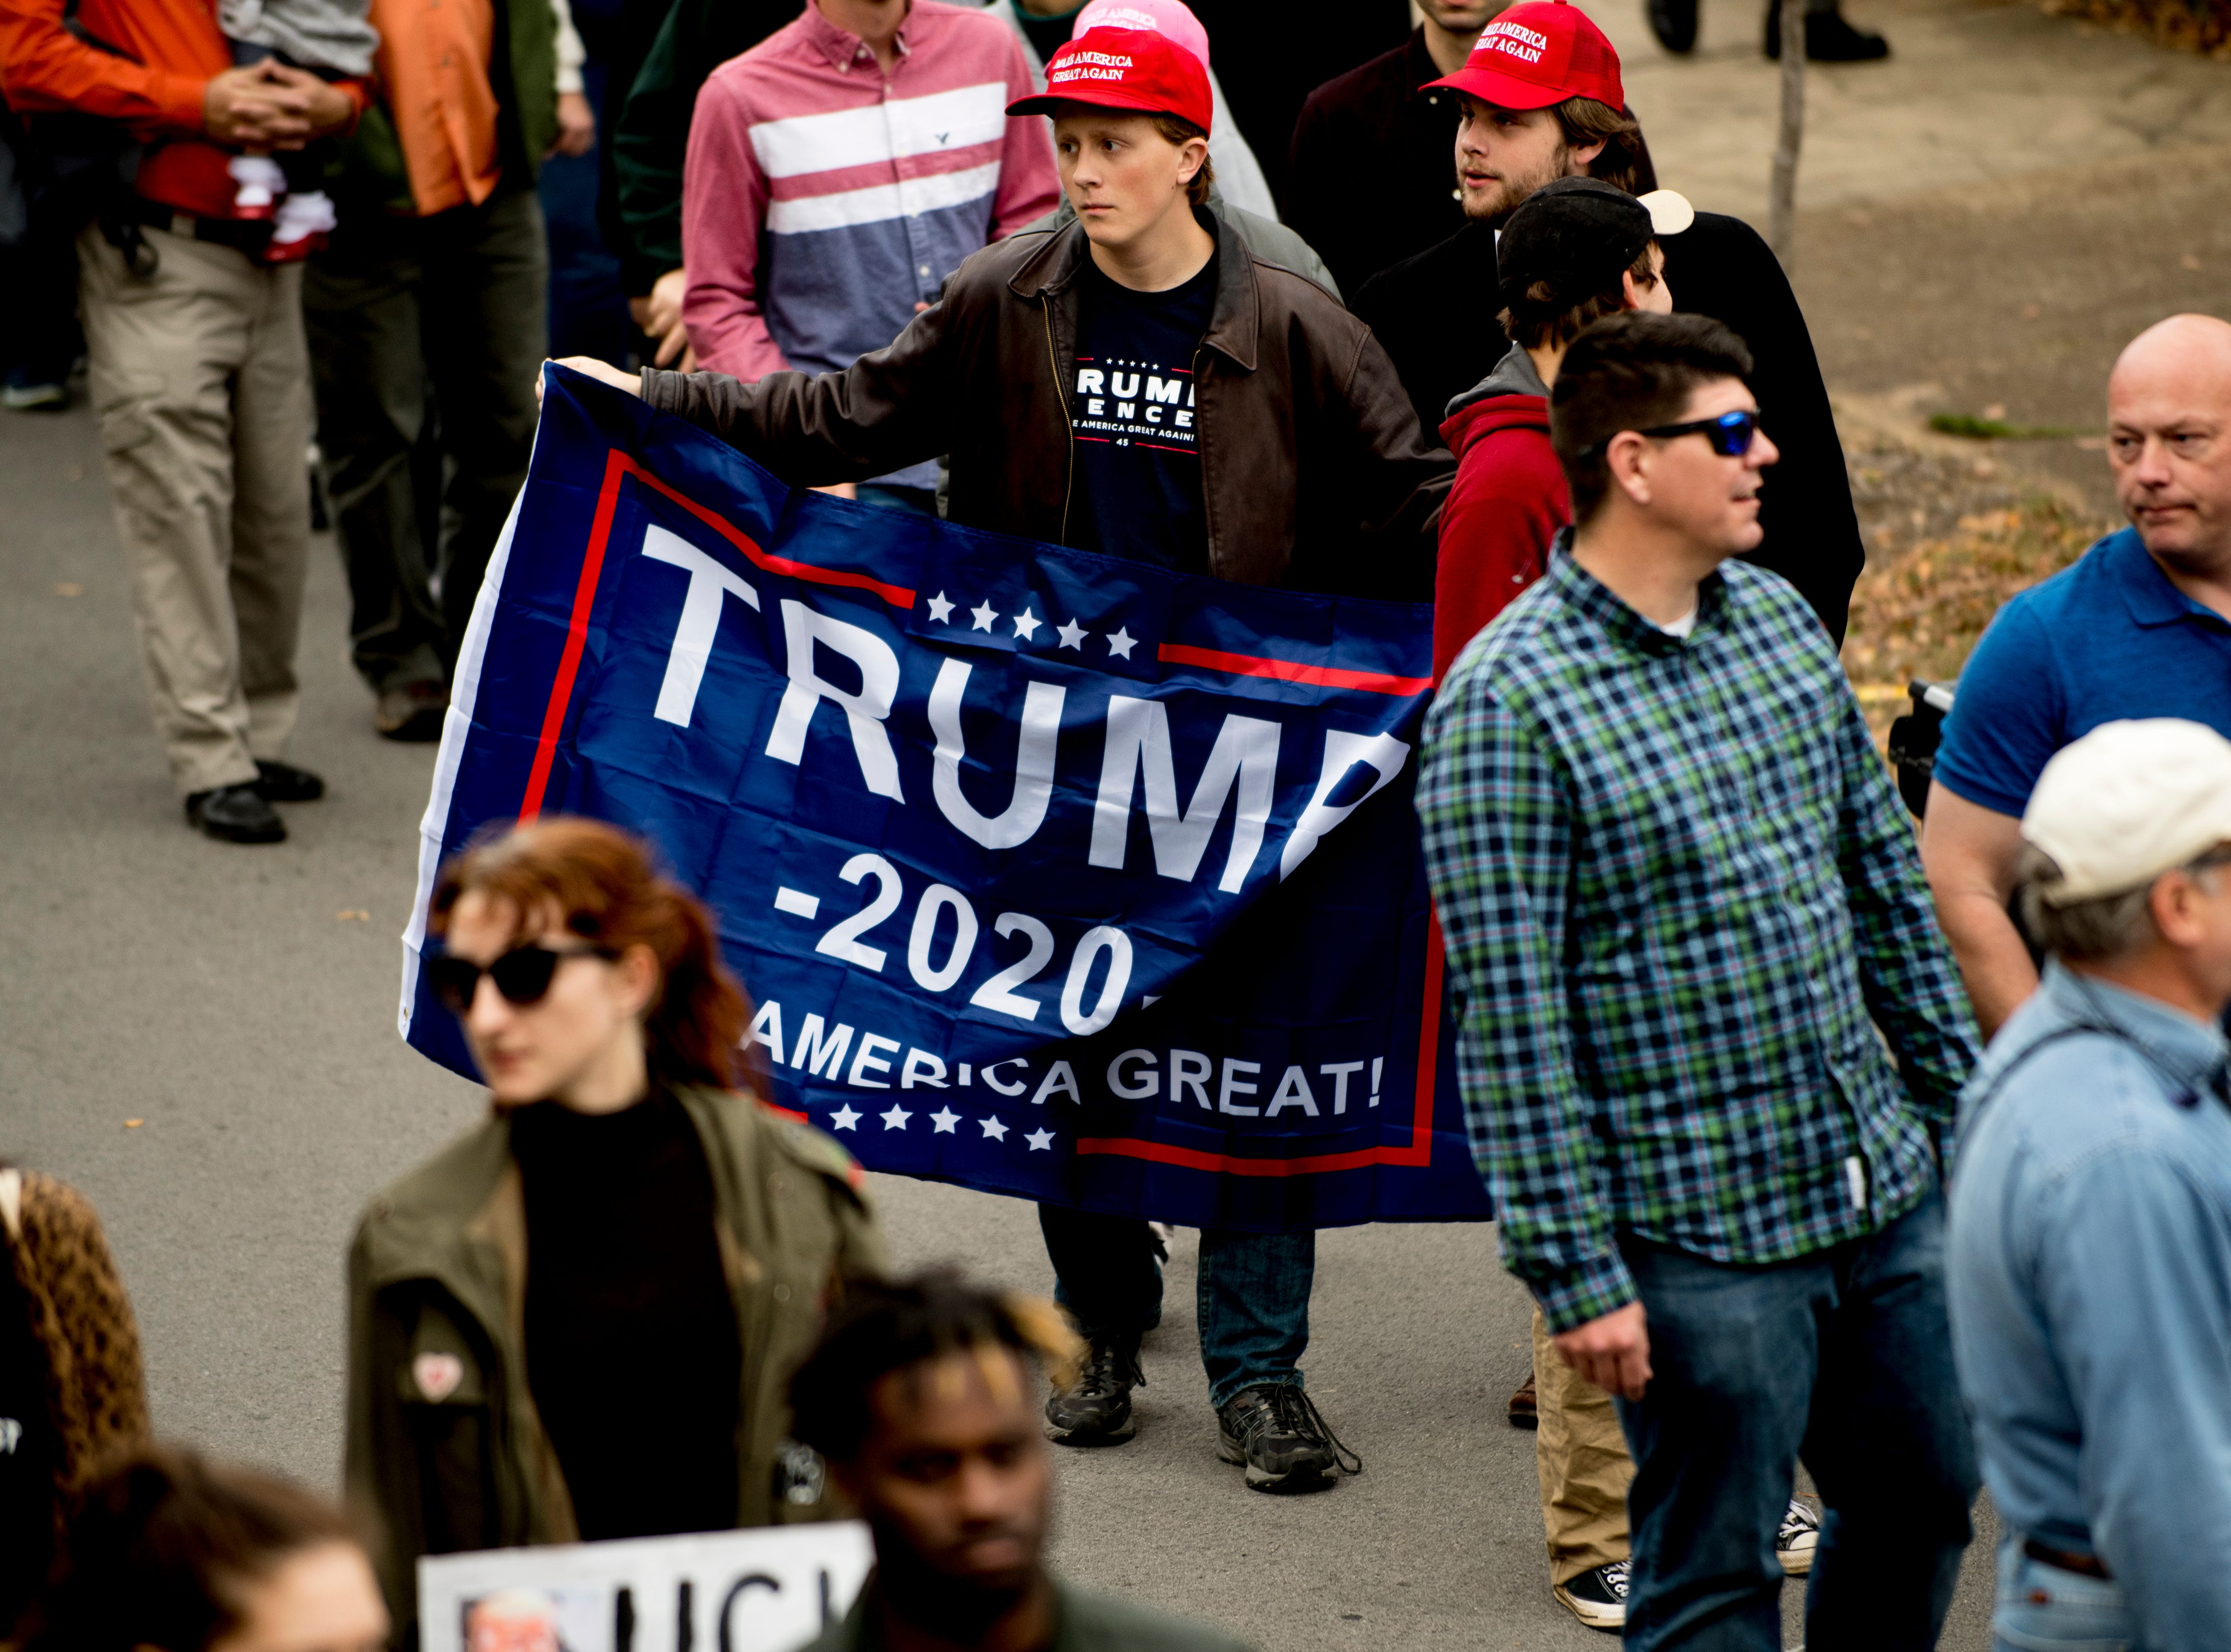 """Supporters ahead of President Donald J. Trump's """"Make America Great Again"""" Rally at McKenzie Arena in Chattanooga, Tennessee on Sunday, November 4, 2018."""